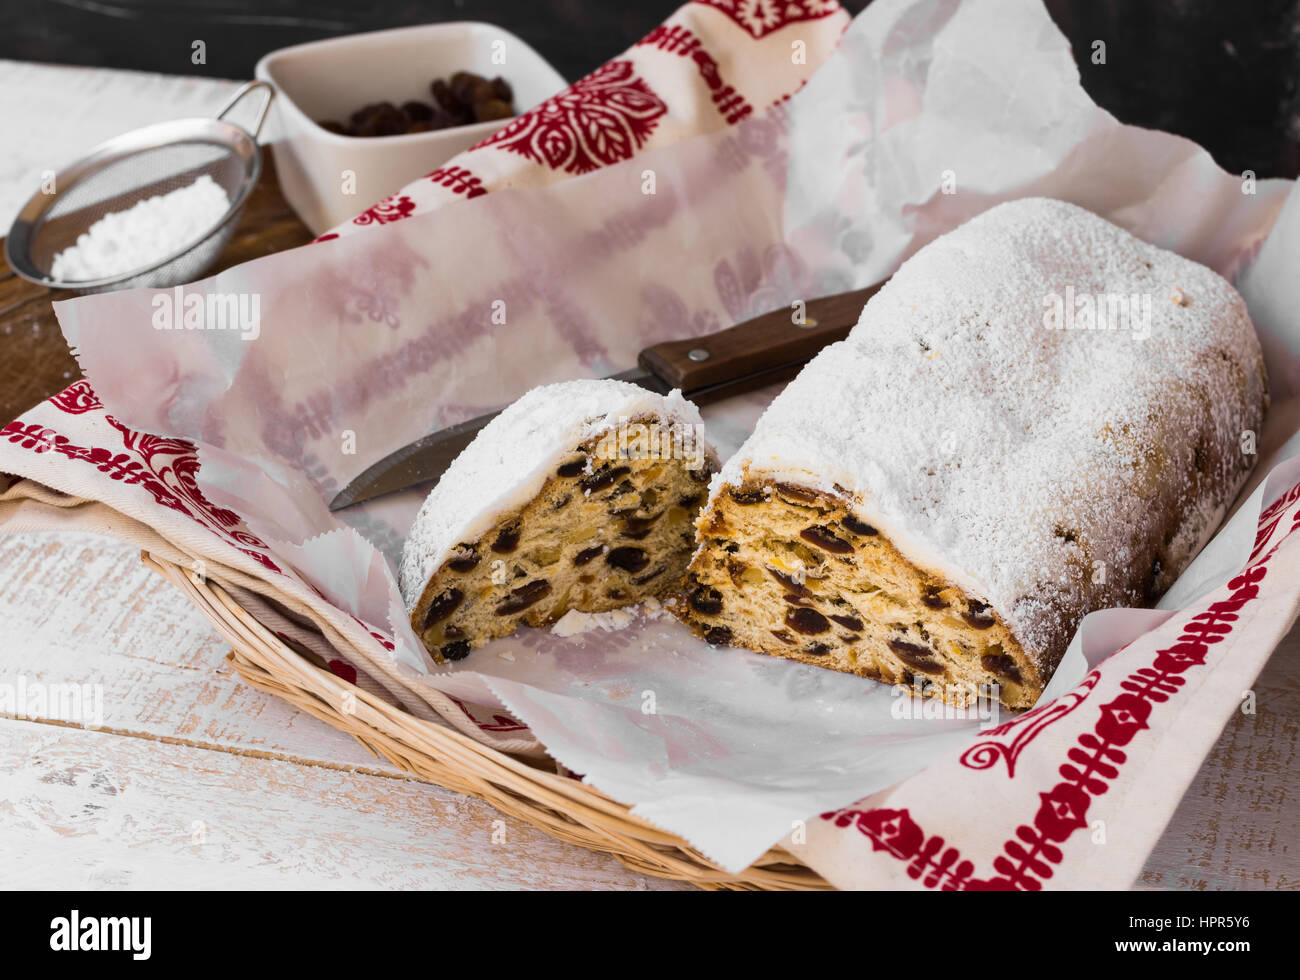 Christmas stollen powdered, with cut off piece with knife, in wicker basket, ingredients, kitchen towel, top view, - Stock Image